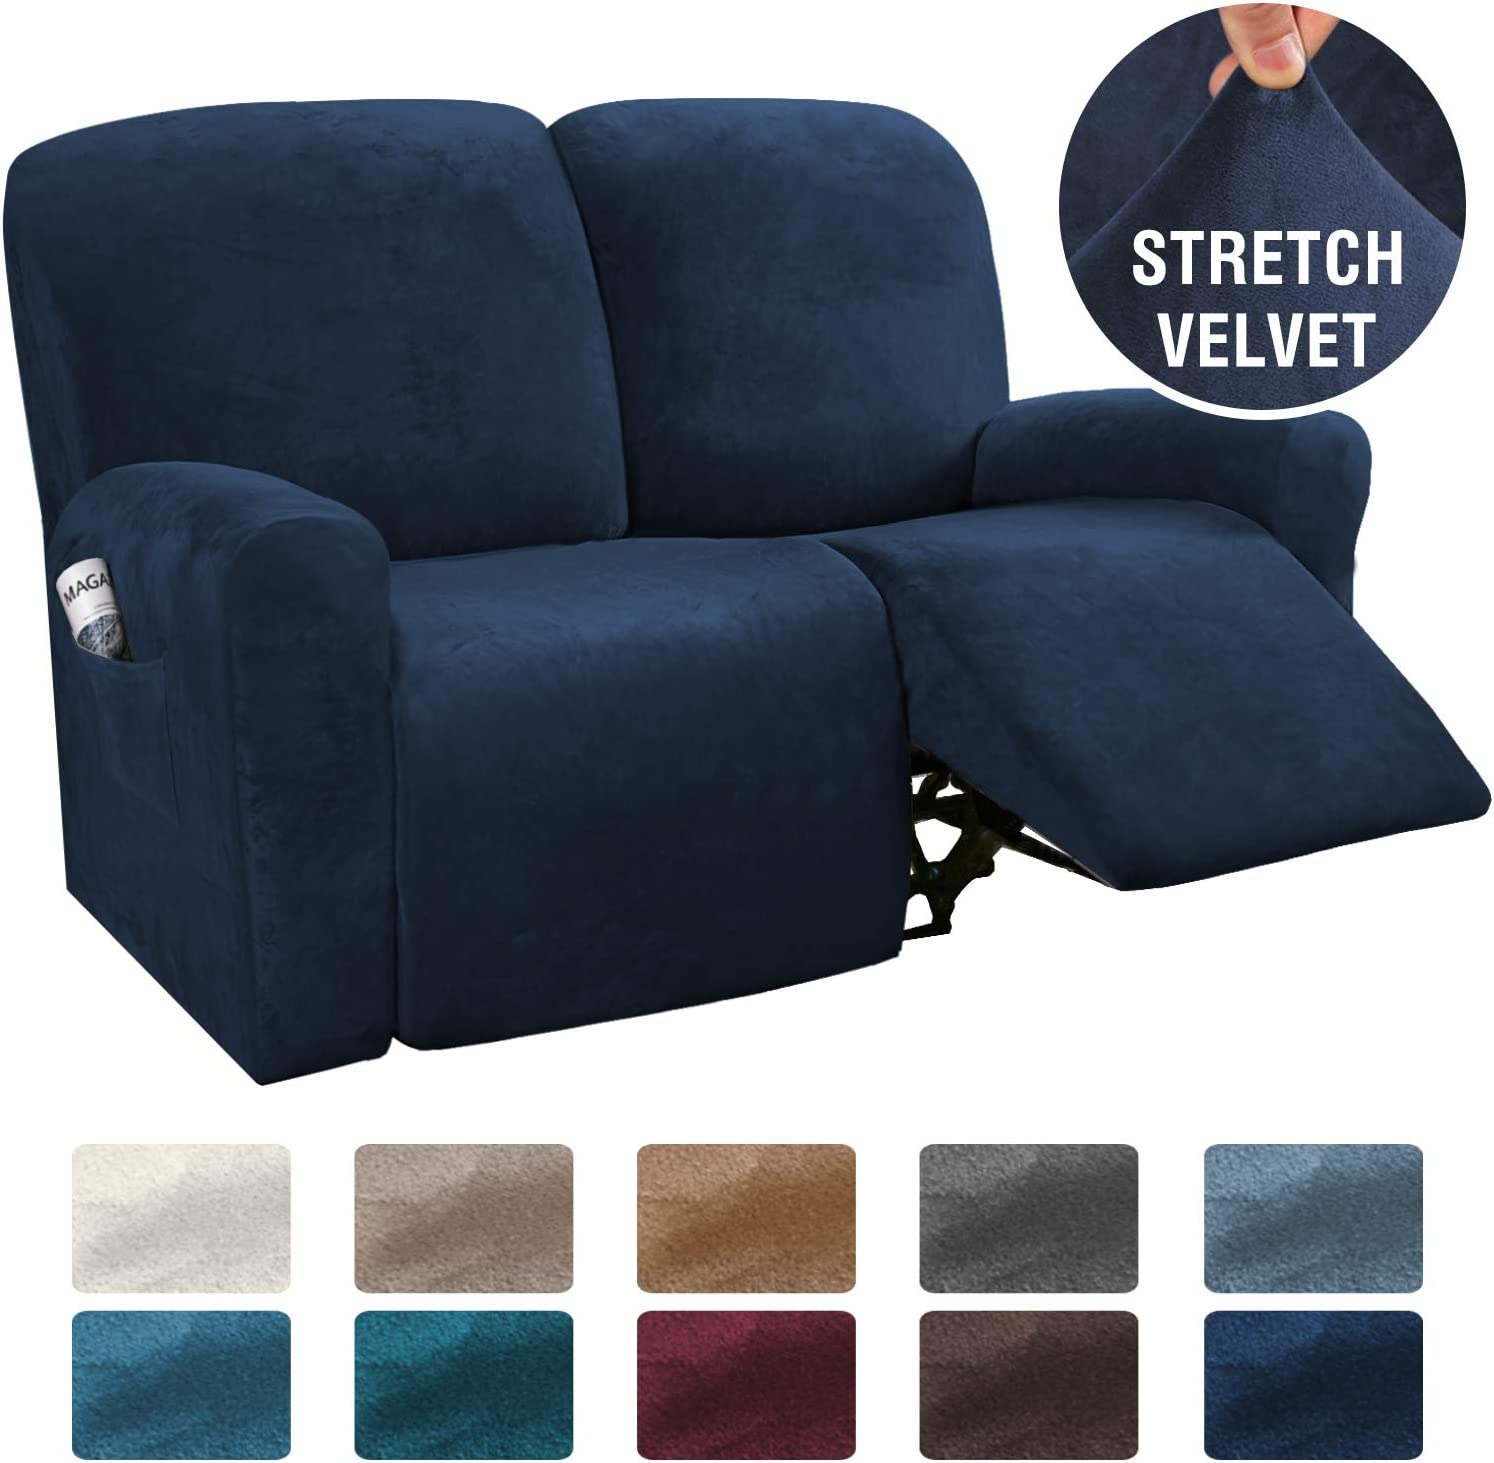 H.VERSAILTEX 6-Pieces Recliner Loveseat Covers Velvet Stretch Reclining Couch Covers for 2 Cushion Sofa Slipcovers Furniture Covers Form Fit Customized Style Thick Soft Washable(Medium, Navy)